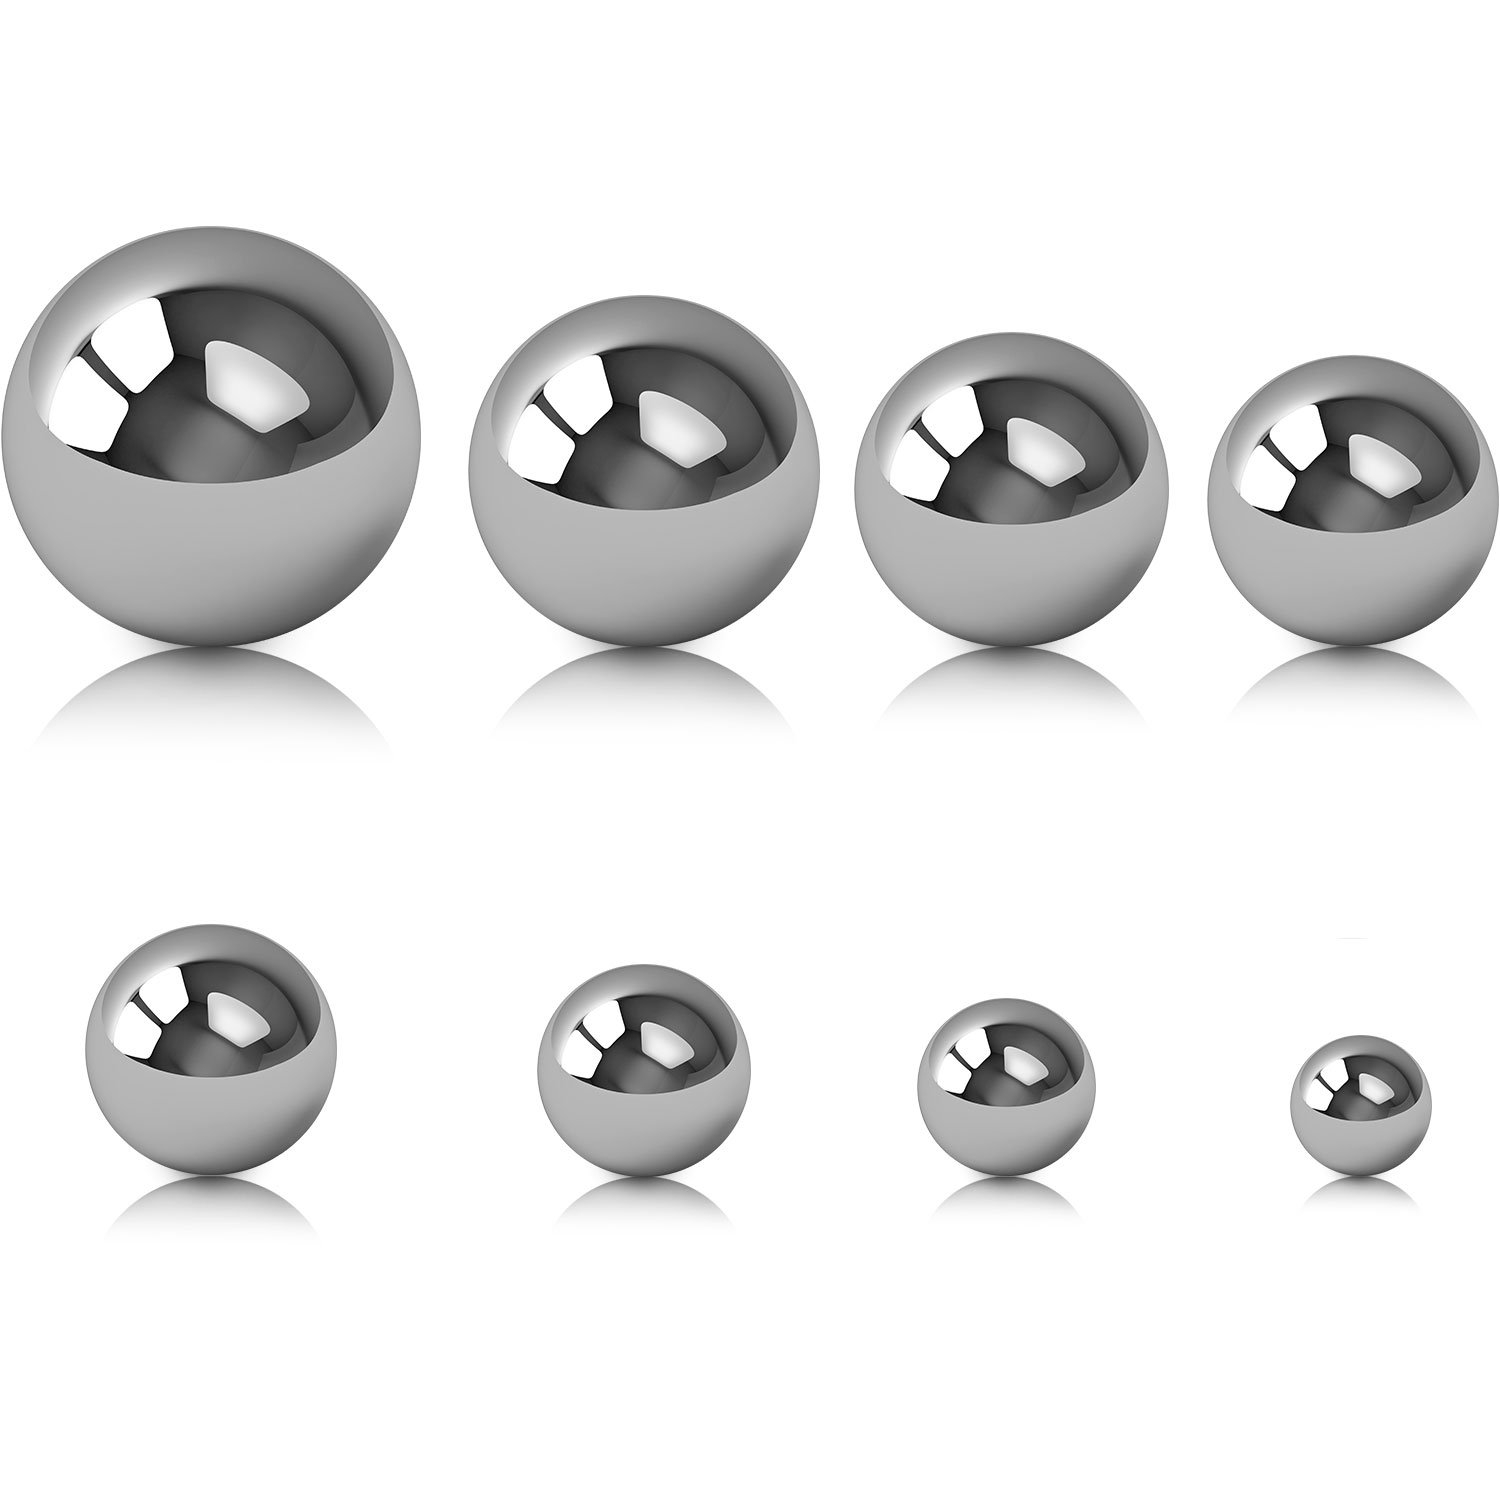 SATINIOR 8 Pieces Coin Ring Making Balls Monkey Fist Balls Stainless Steel Balls, Assortment of 3/ 4 Inch, 5/ 8 Inch, 9/ 16 Inch, 1/ 2 Inch, 7/ 16 Inch, 3/ 8 Inch, 5/ 16 Inch and 1/ 4 Inch